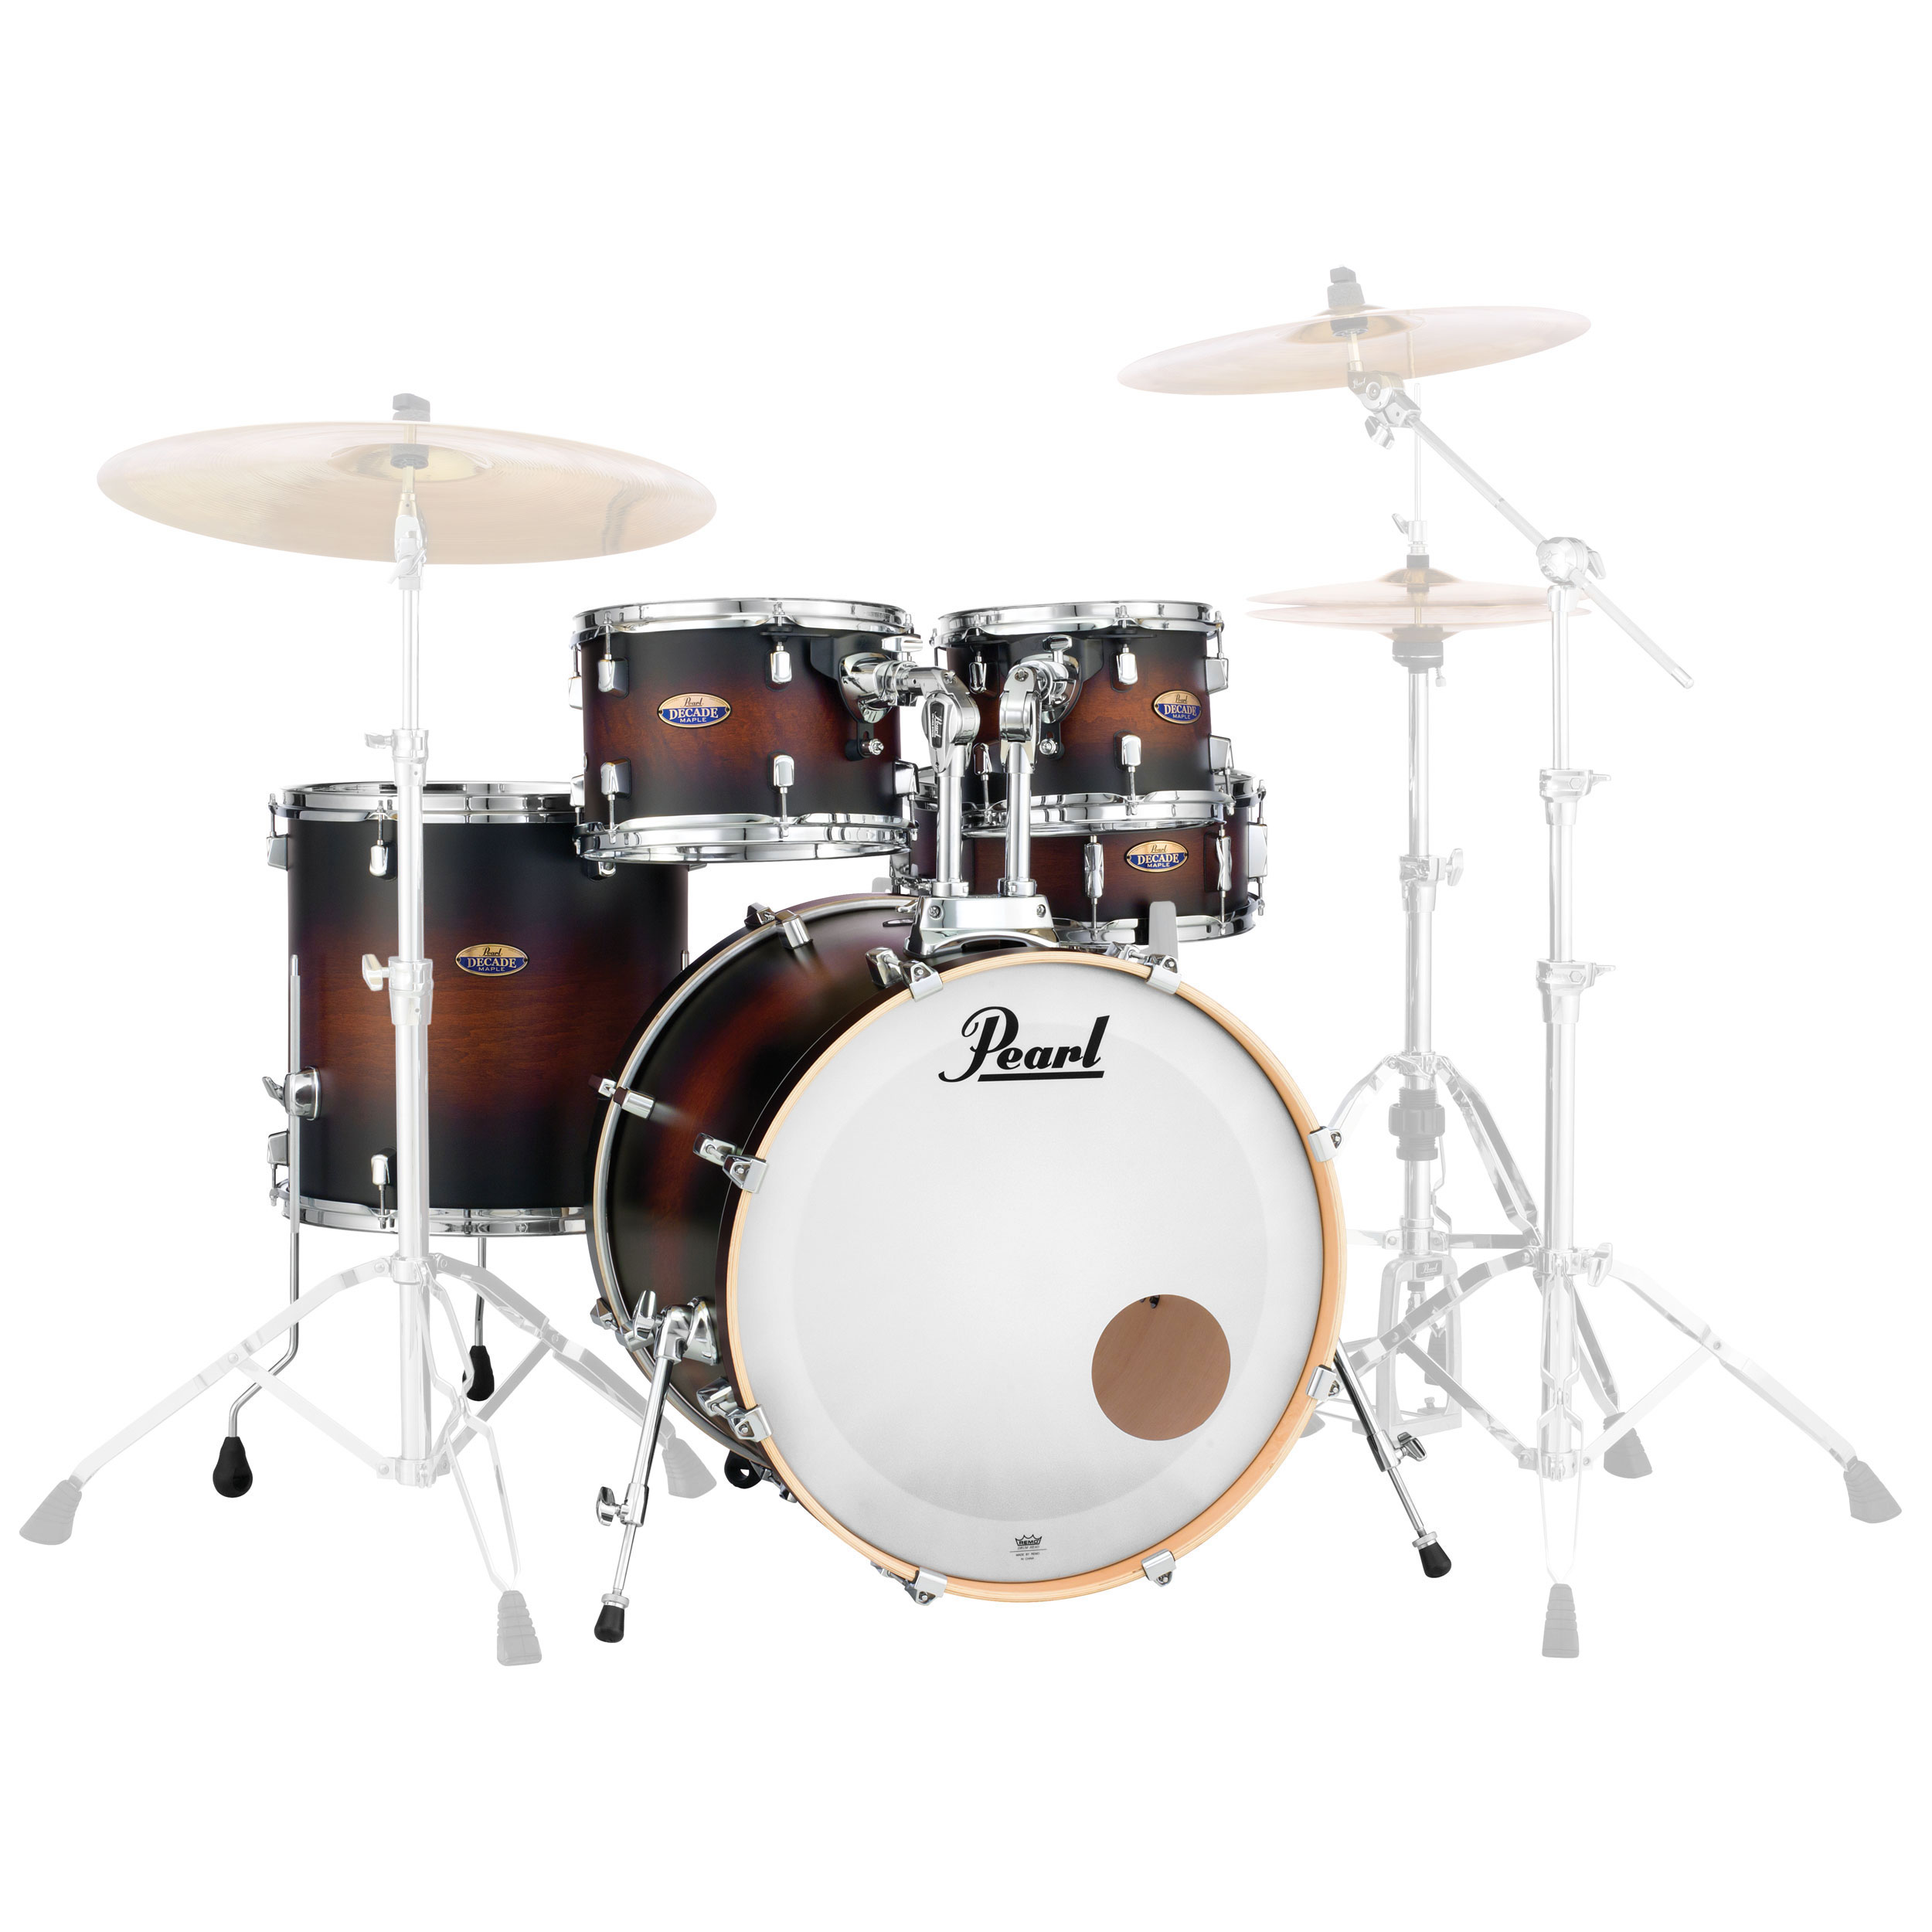 "Pearl Decade Maple 5-Piece Drum Set Shell Pack (20"" Bass, 10/12/14"" Toms, 14"" Snare) in Lacquer Finish"